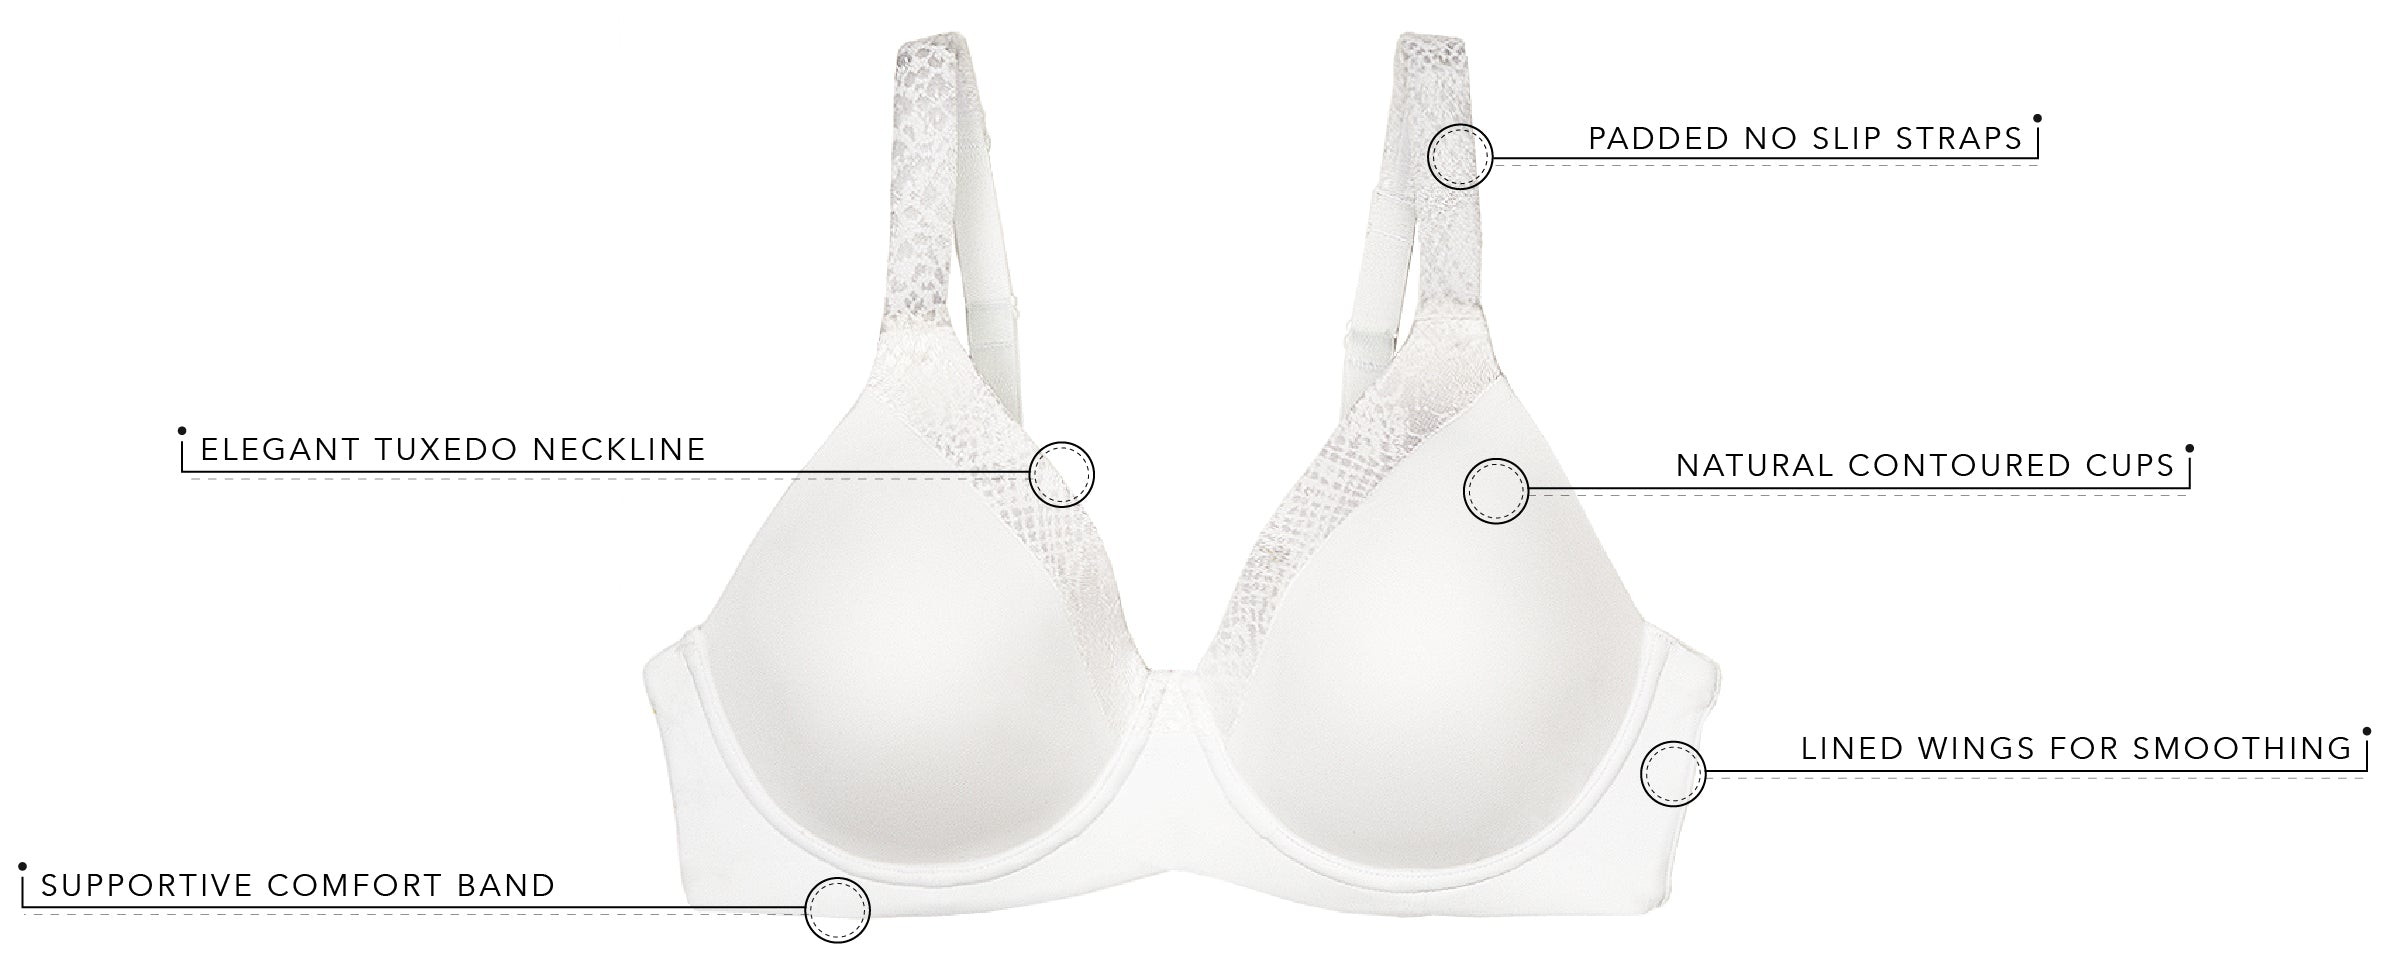 The Brigitte Luxe Wirefree - T-Shirt Full Figure Bra | 5211 - Product Detail View